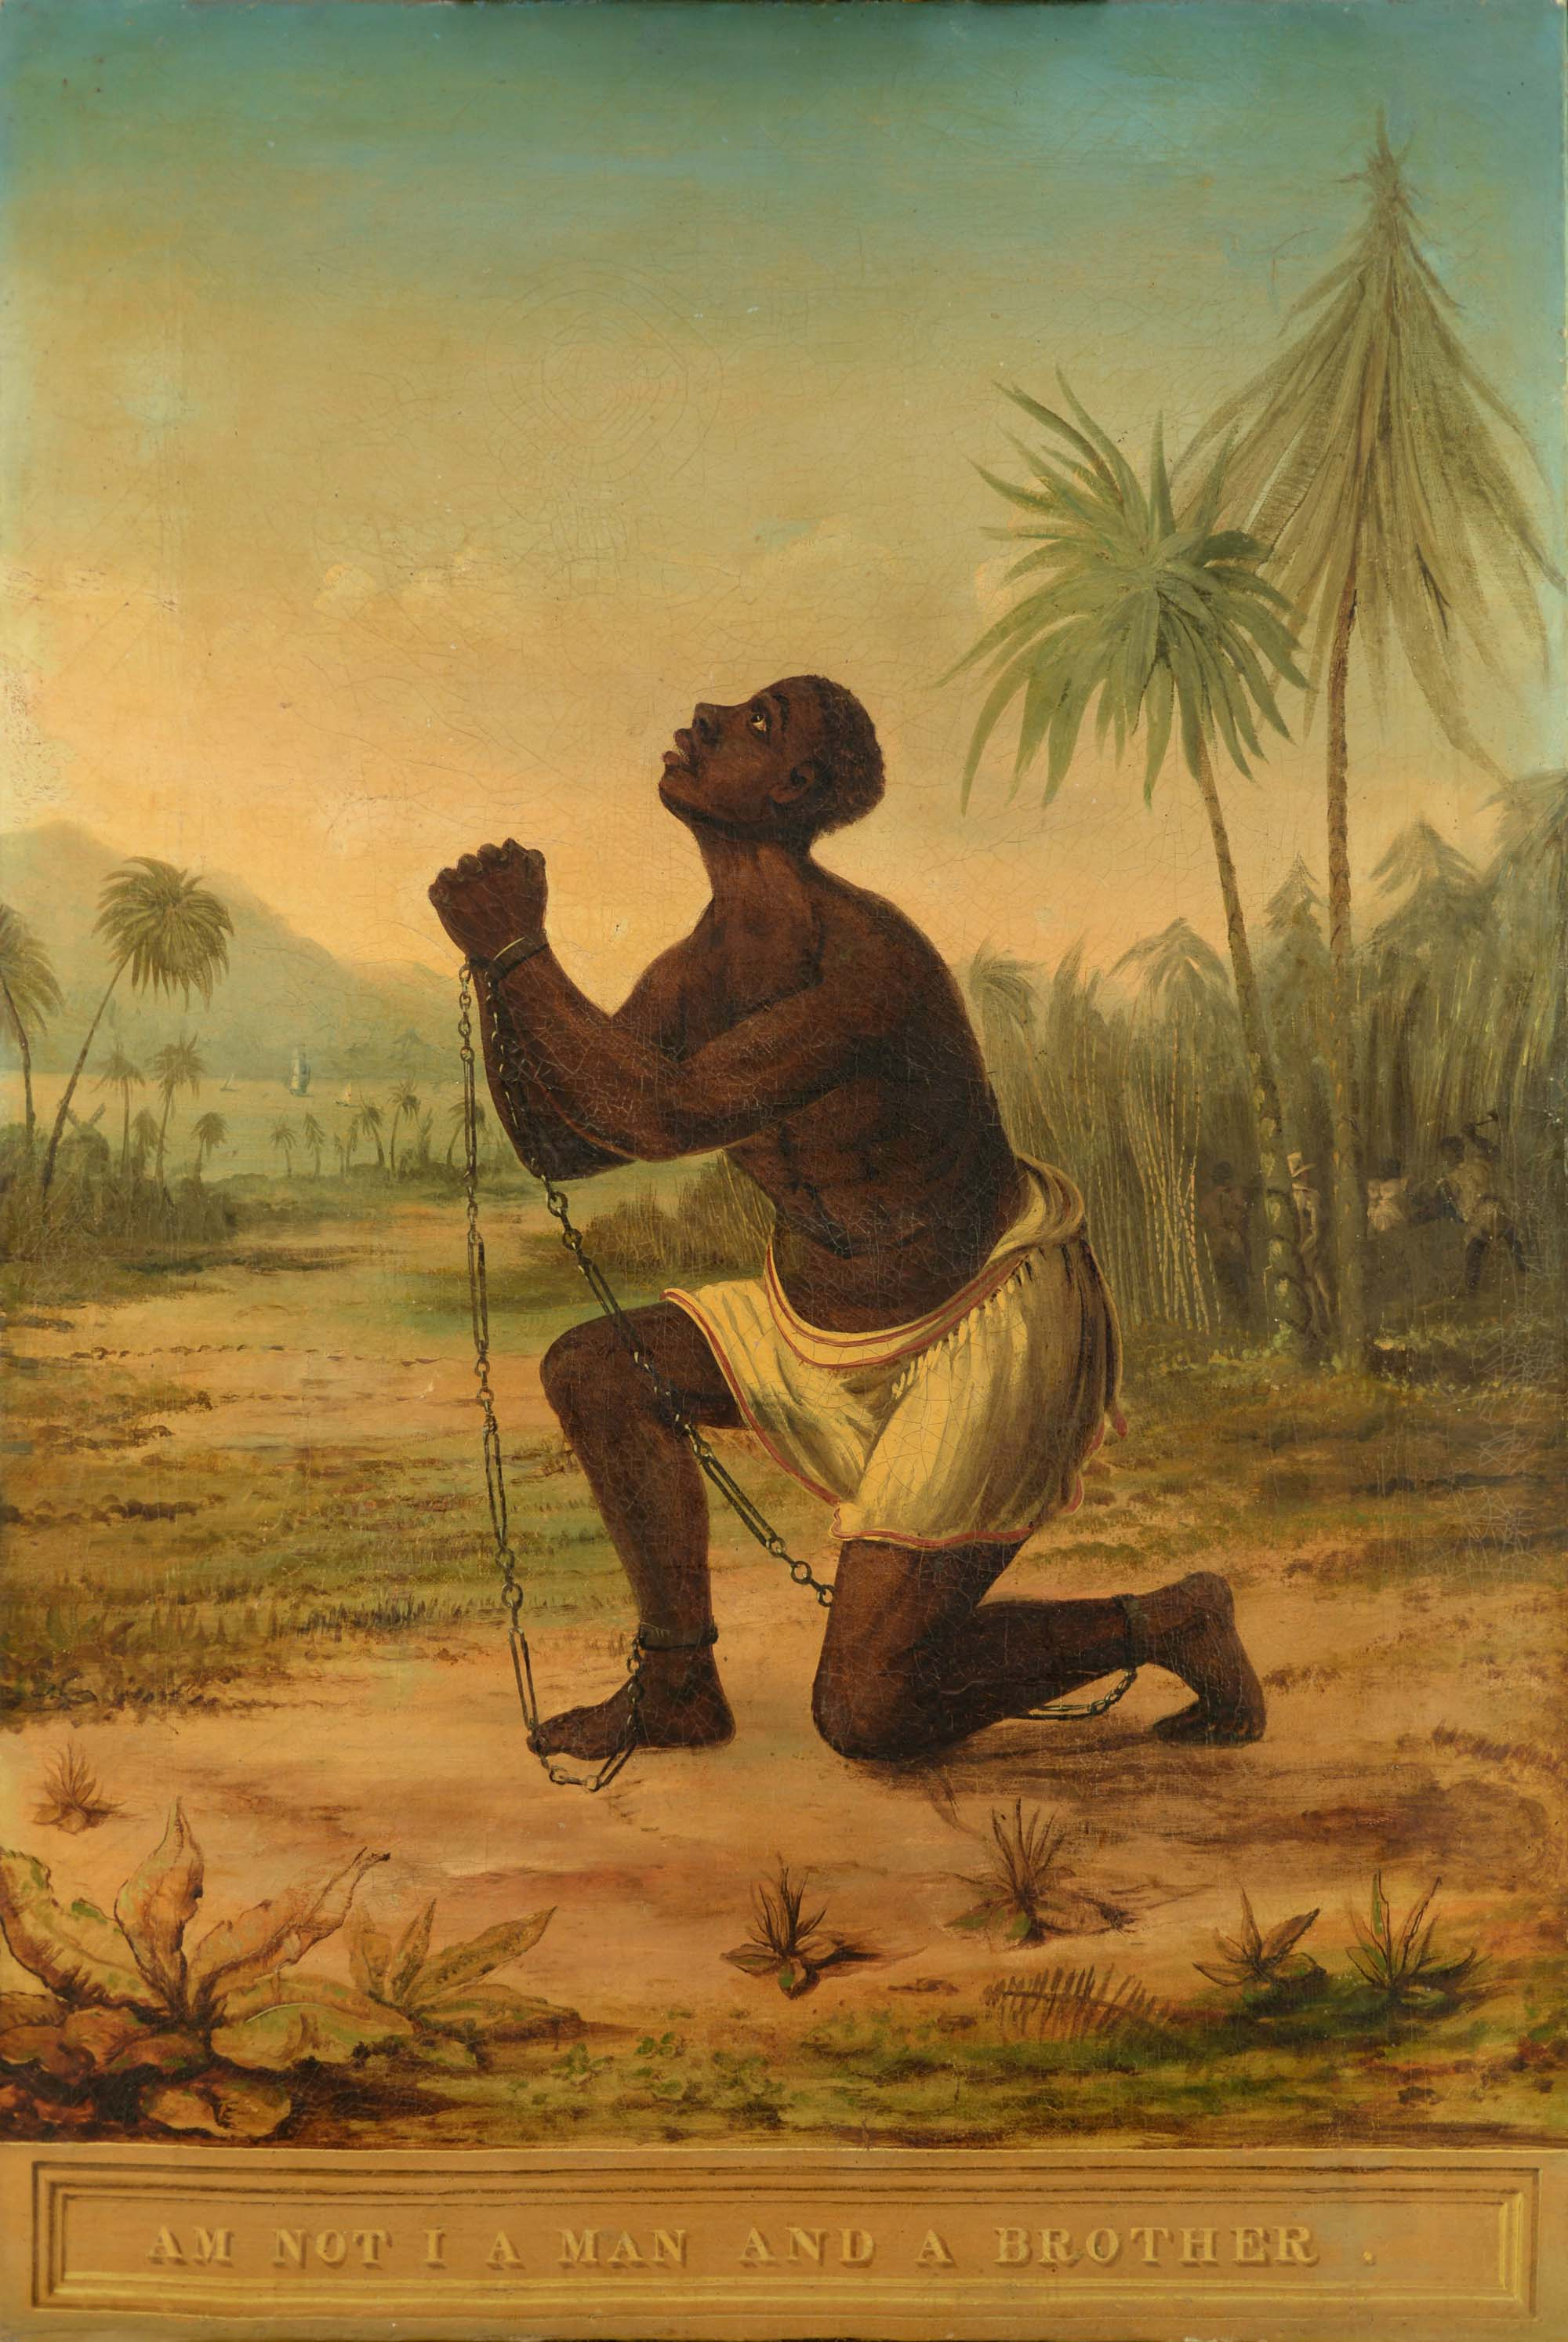 a painting depicting a shackled African man with hands clasped and head looking heavenward